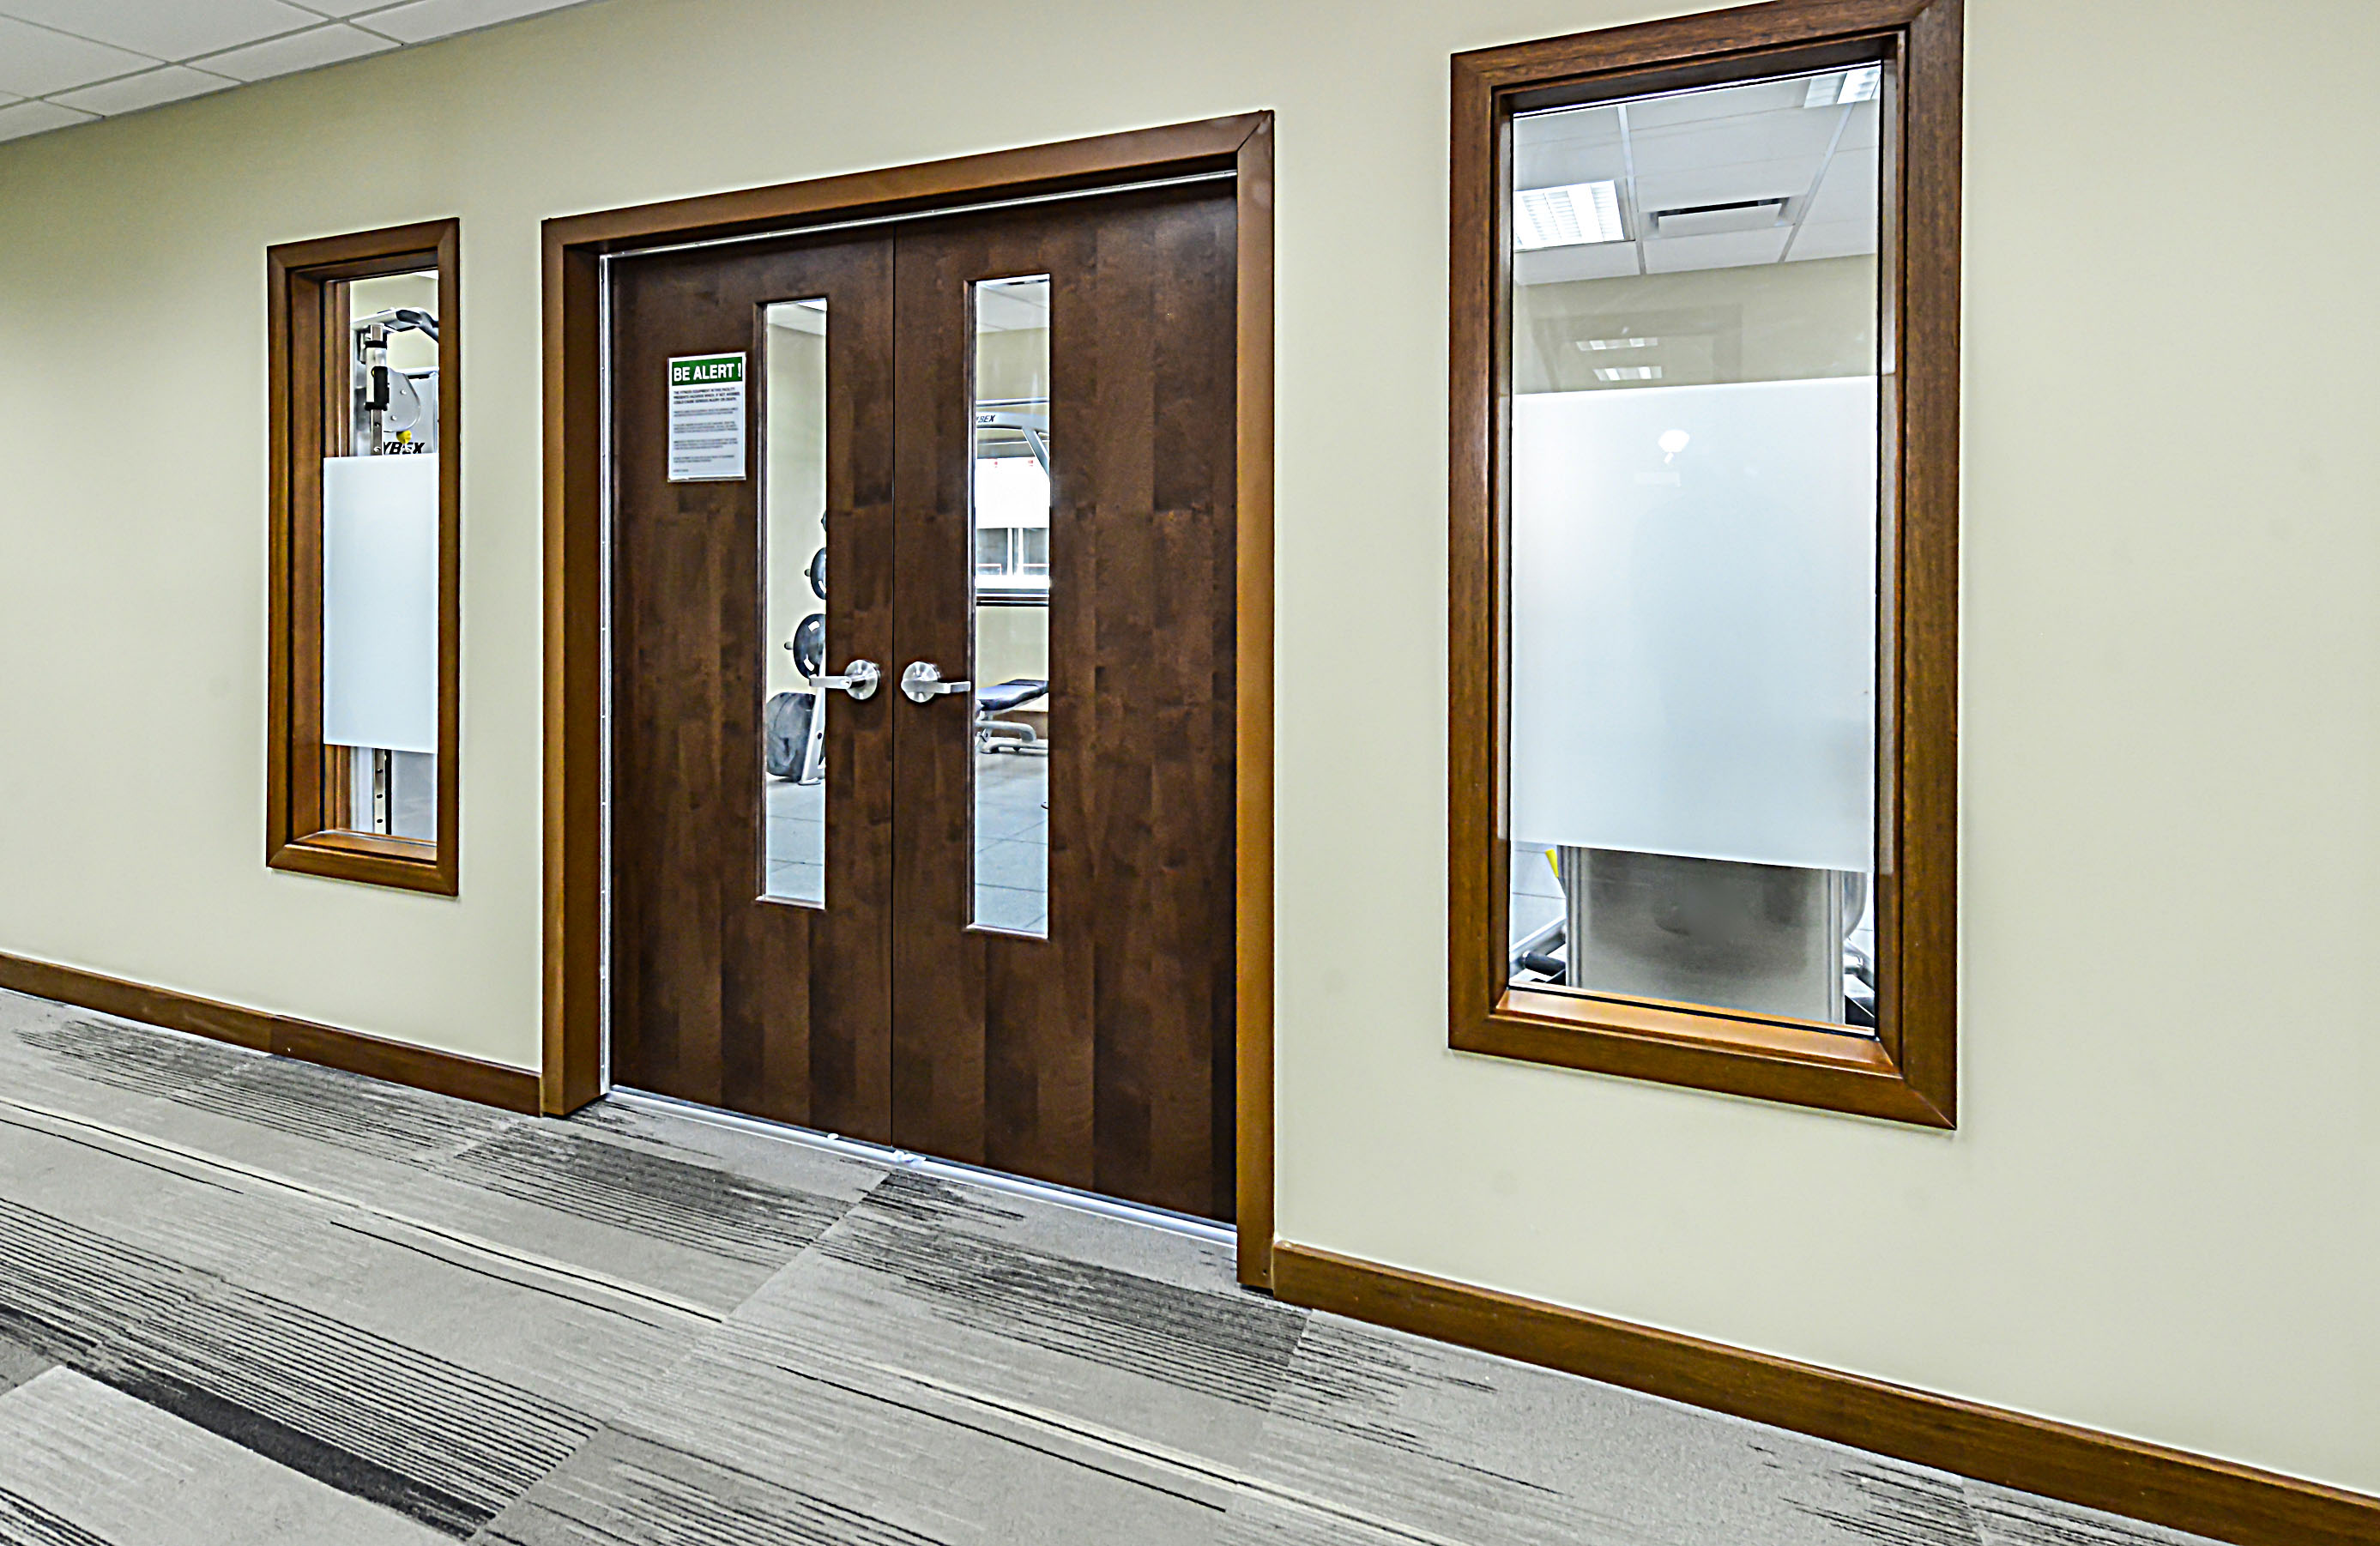 only doors to abloy aasd security and lps the bre steel door hm manufacture commercial hosts uk company assa doorsets cpni both day testing en is news timber government local